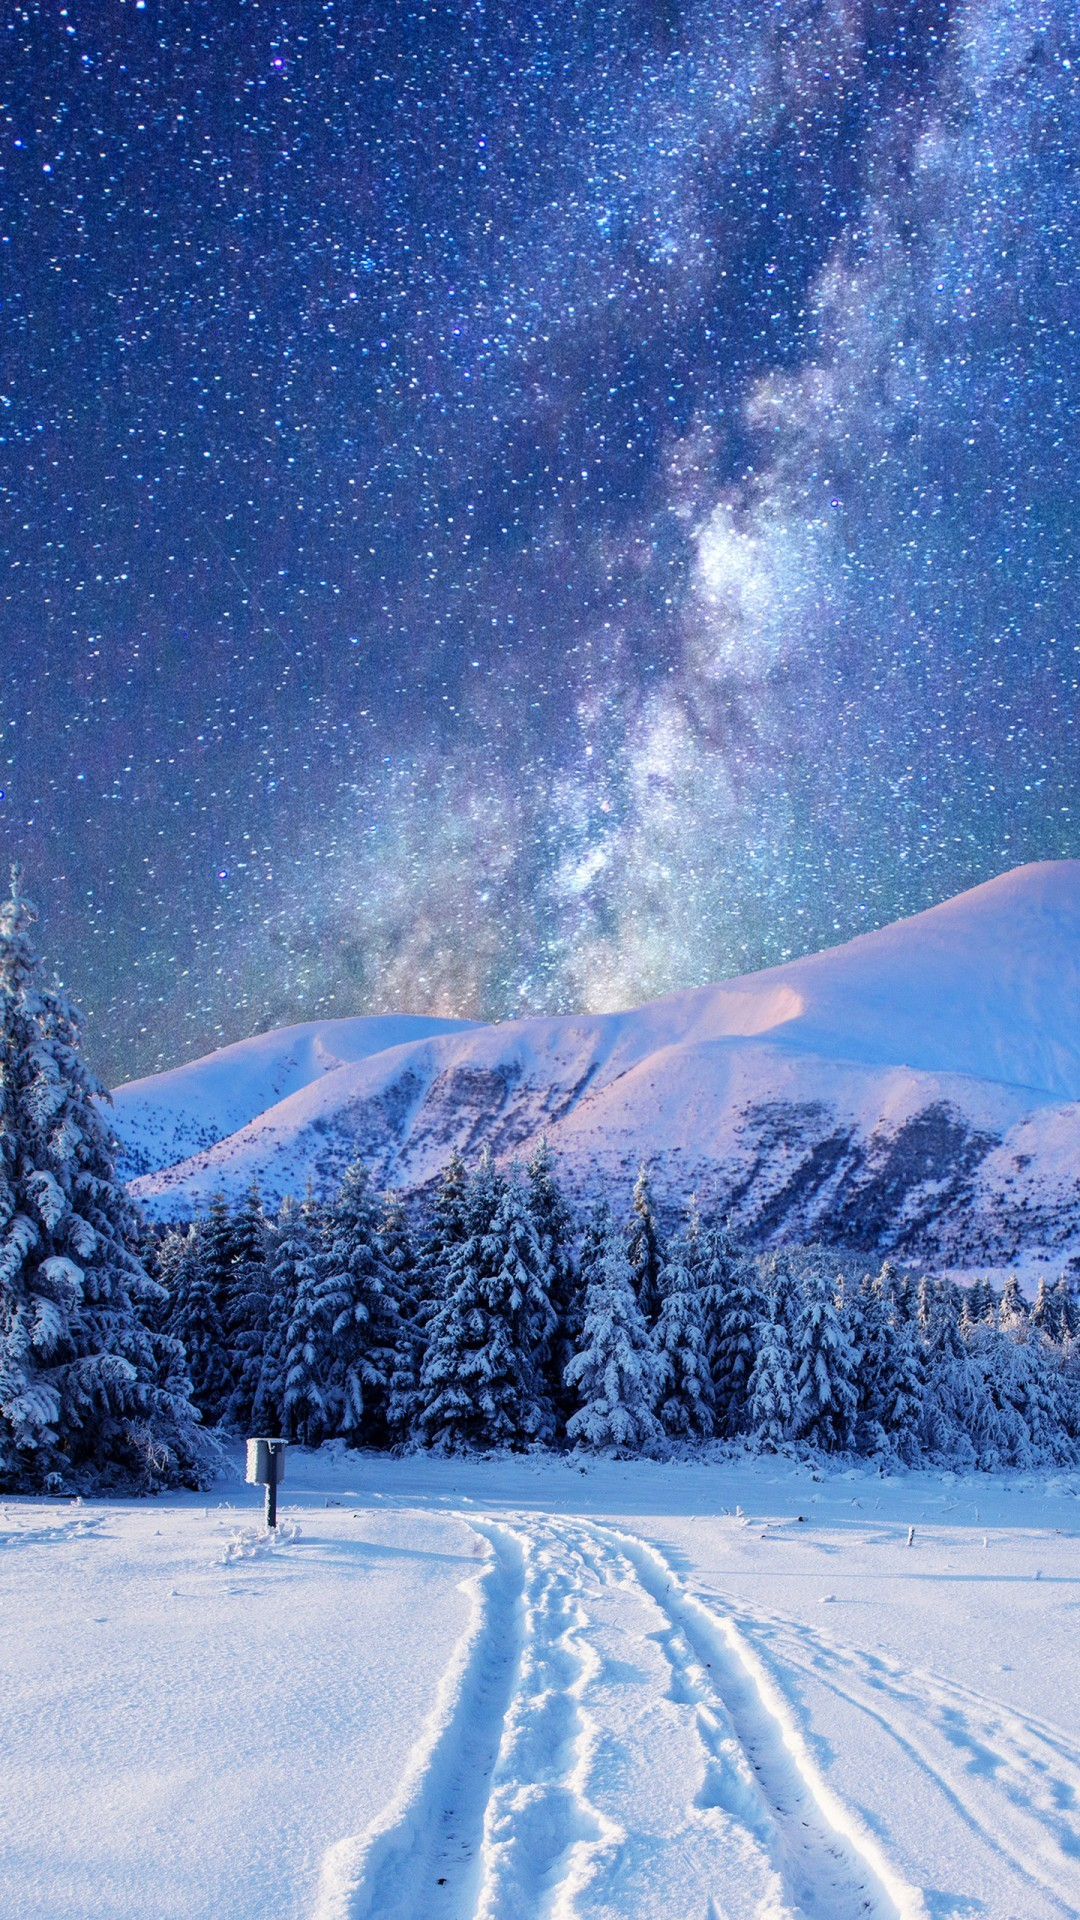 Winter Hd Wallpapers For Iphone 7  Wallpaperspictures